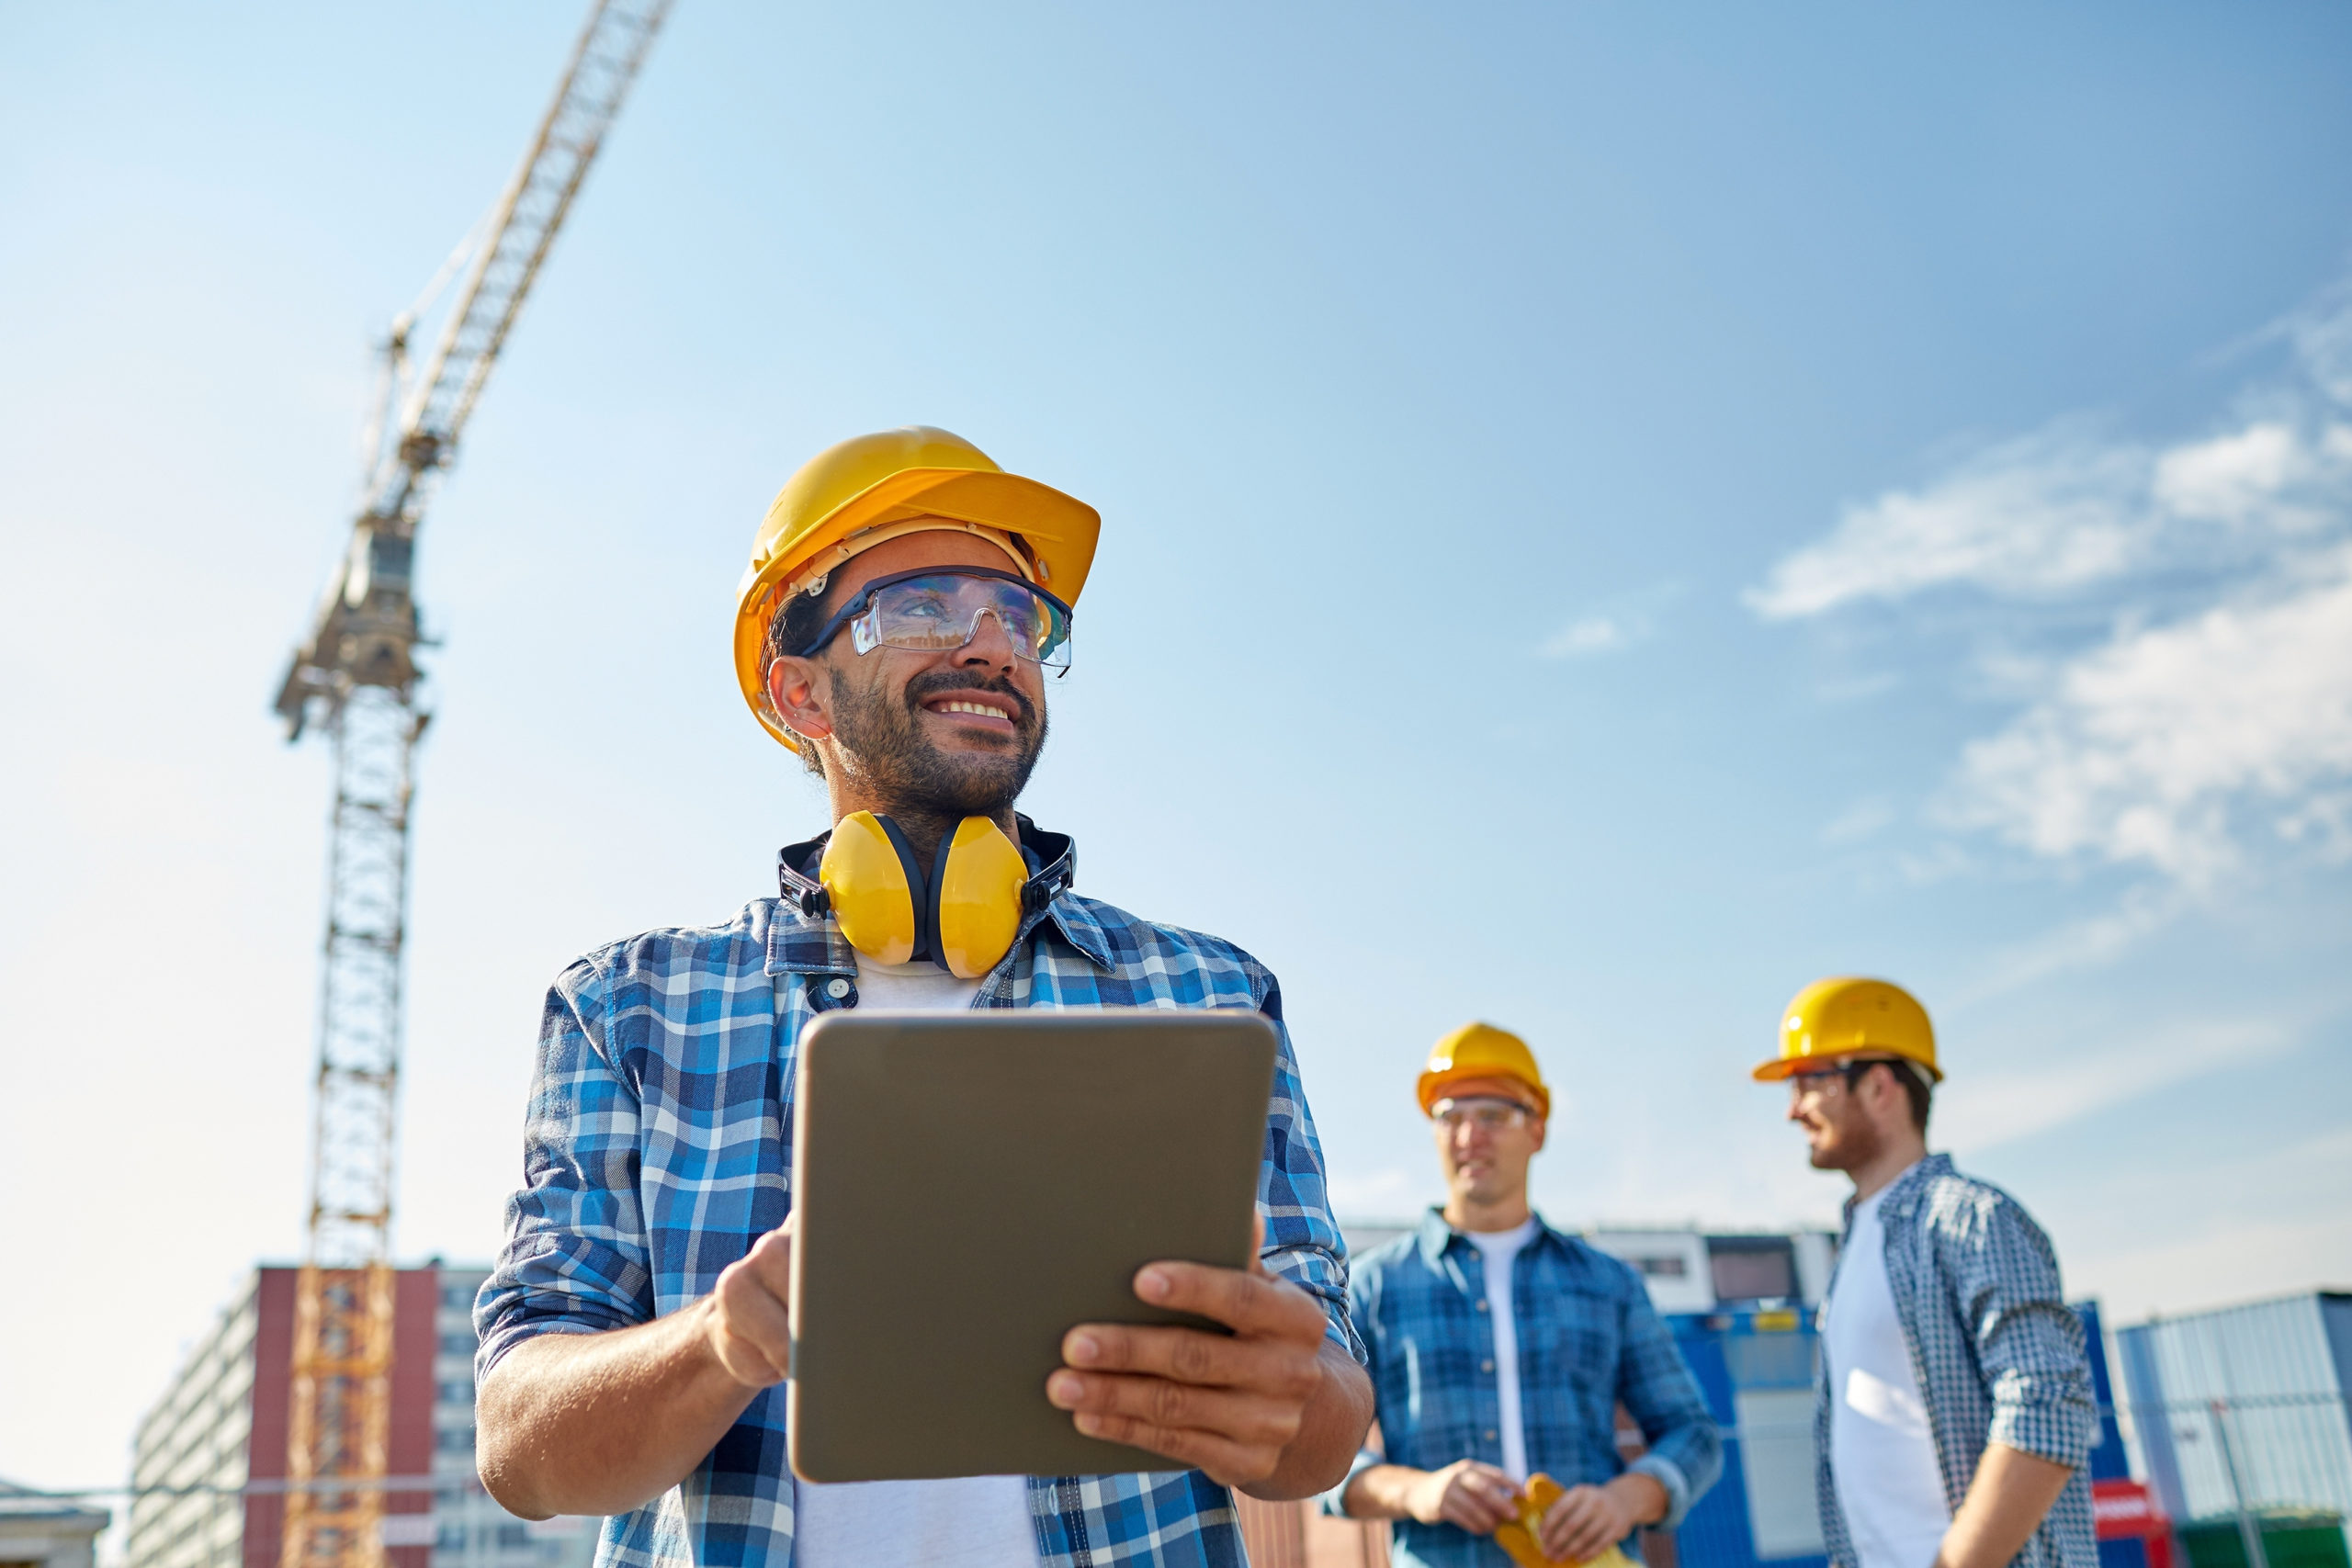 Field service management software lightens the load of running a building business